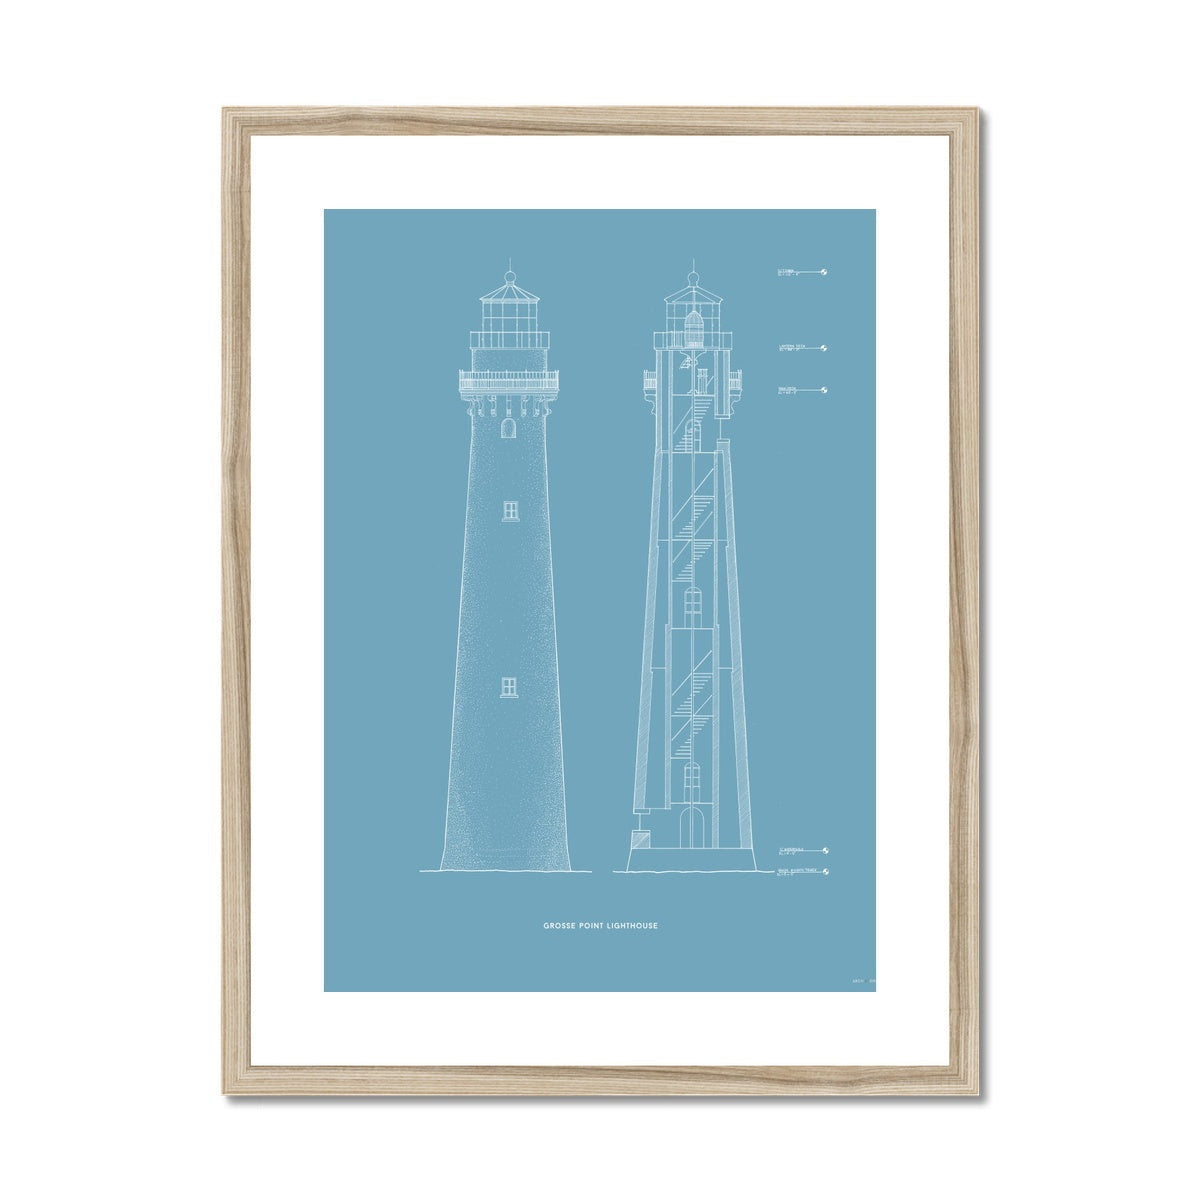 Grosse Point Lighthouse - East Elevation and Cross Section - Blue -  Framed & Mounted Print